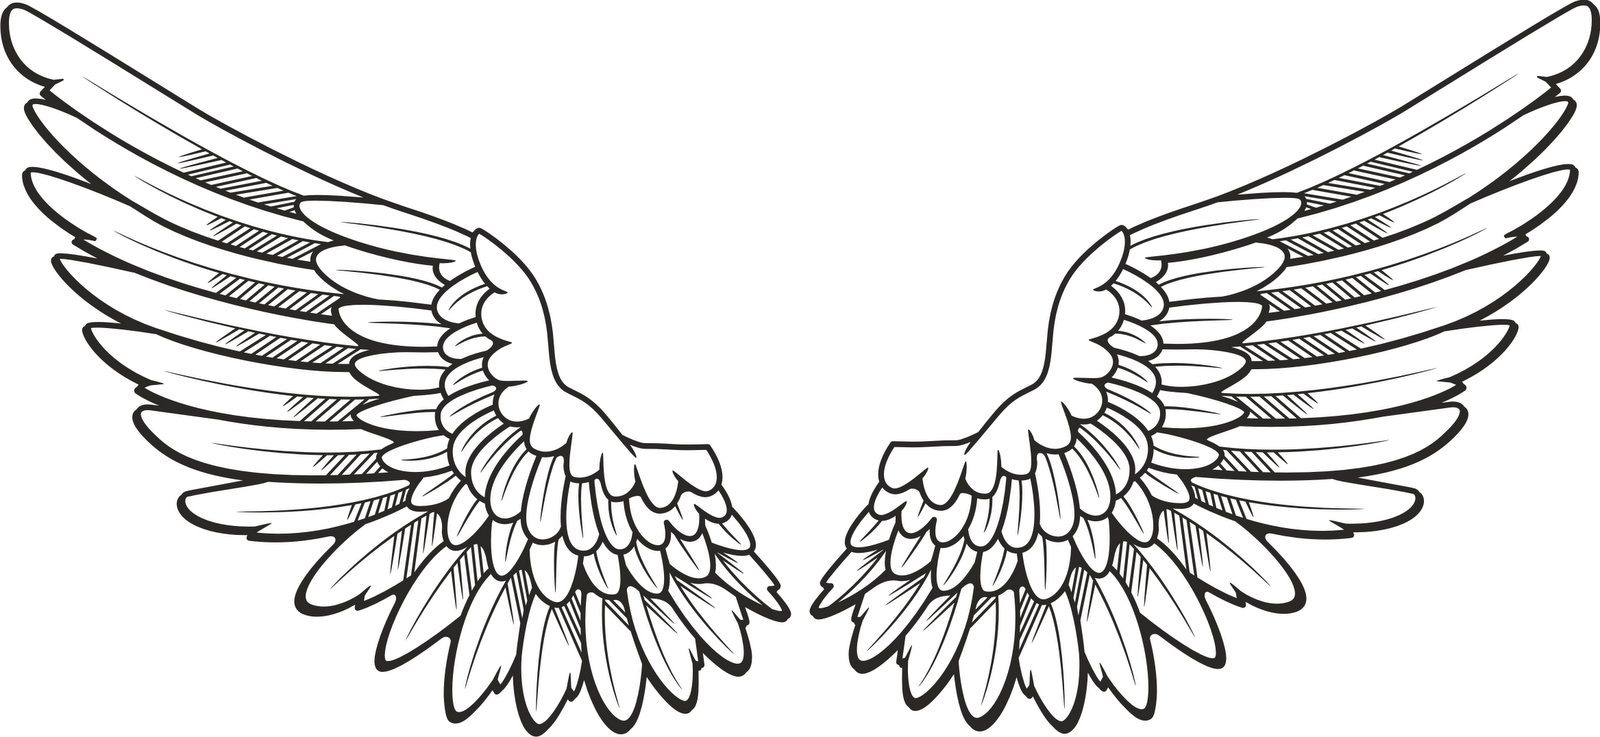 Eagle Wings Png & Free Eagle Wings.png Transparent Images #30447.